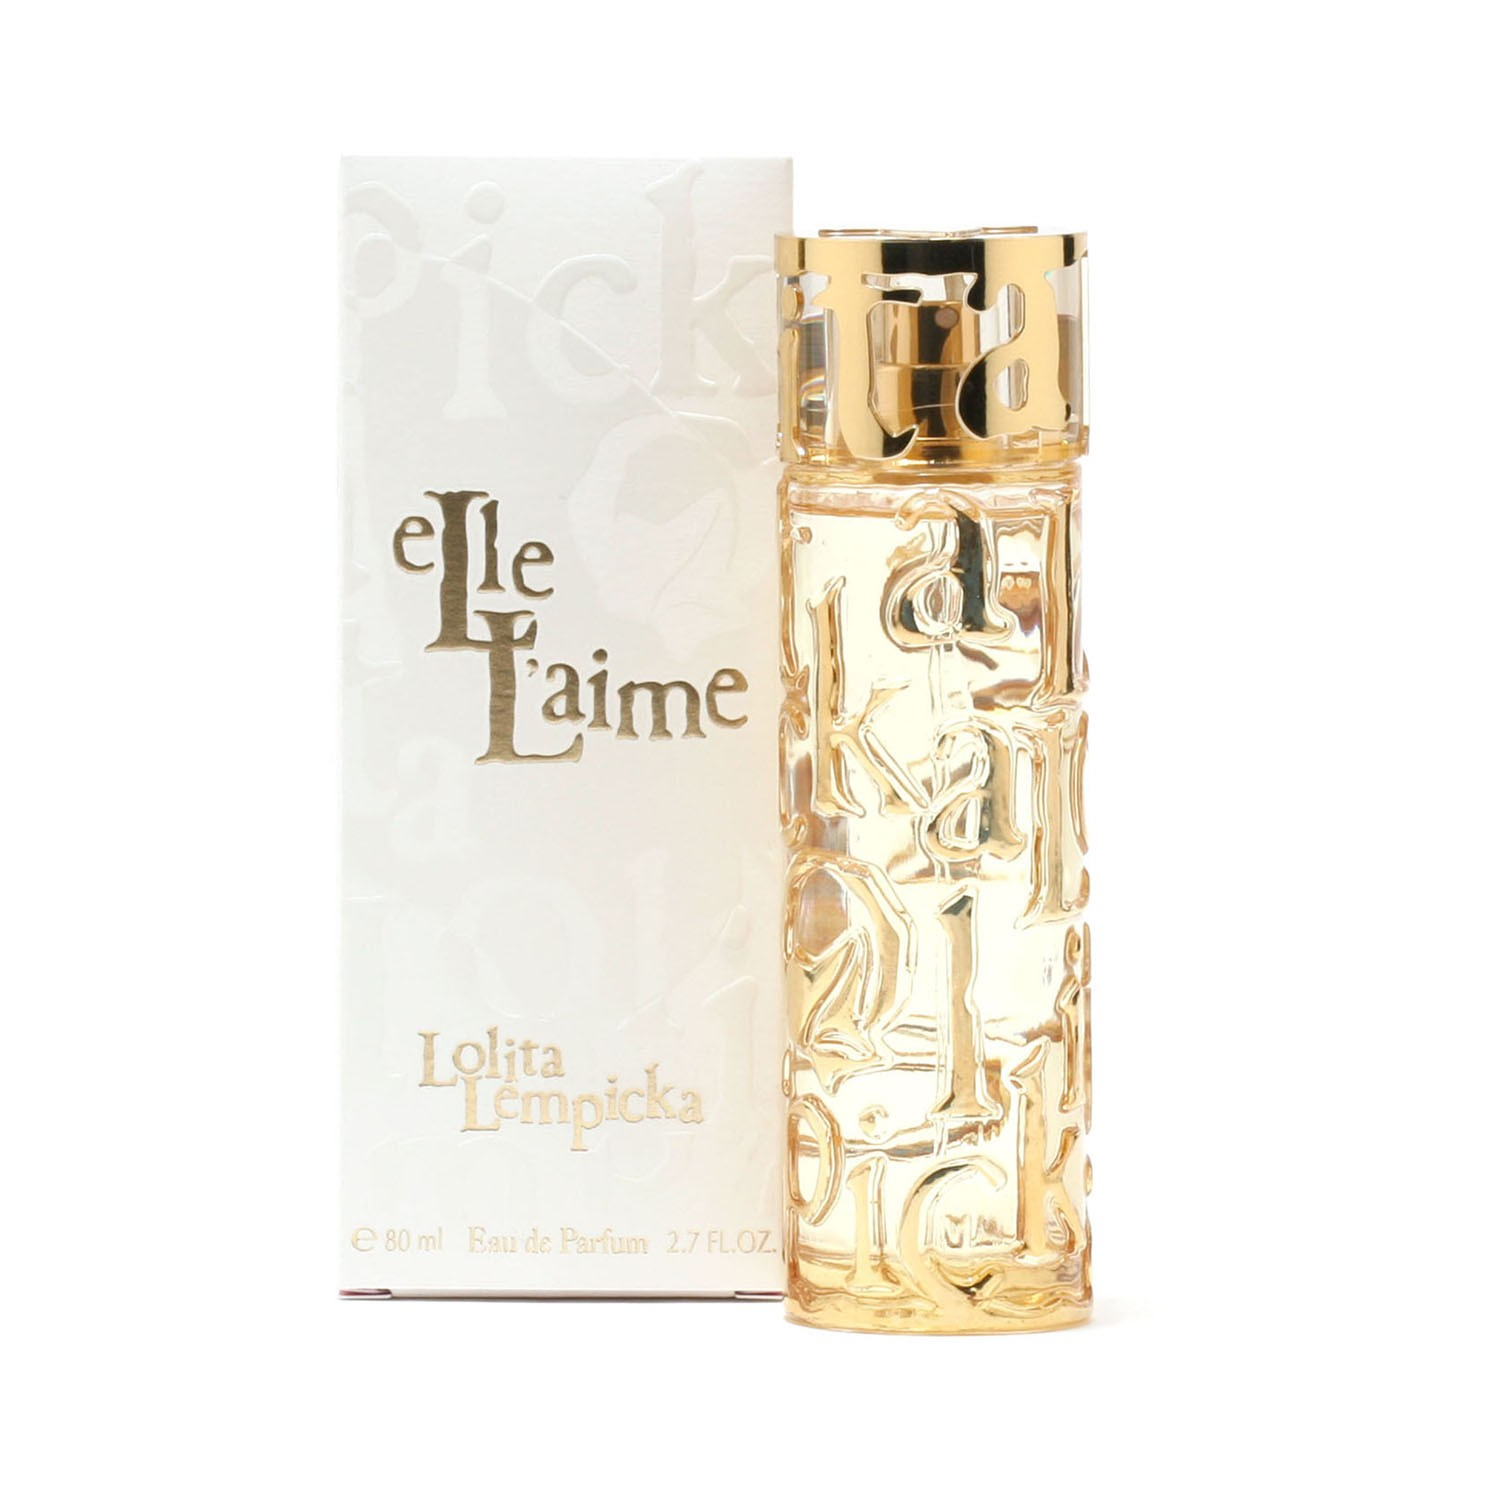 lolita lempicka elle l 39 aime ladies edp spray. Black Bedroom Furniture Sets. Home Design Ideas